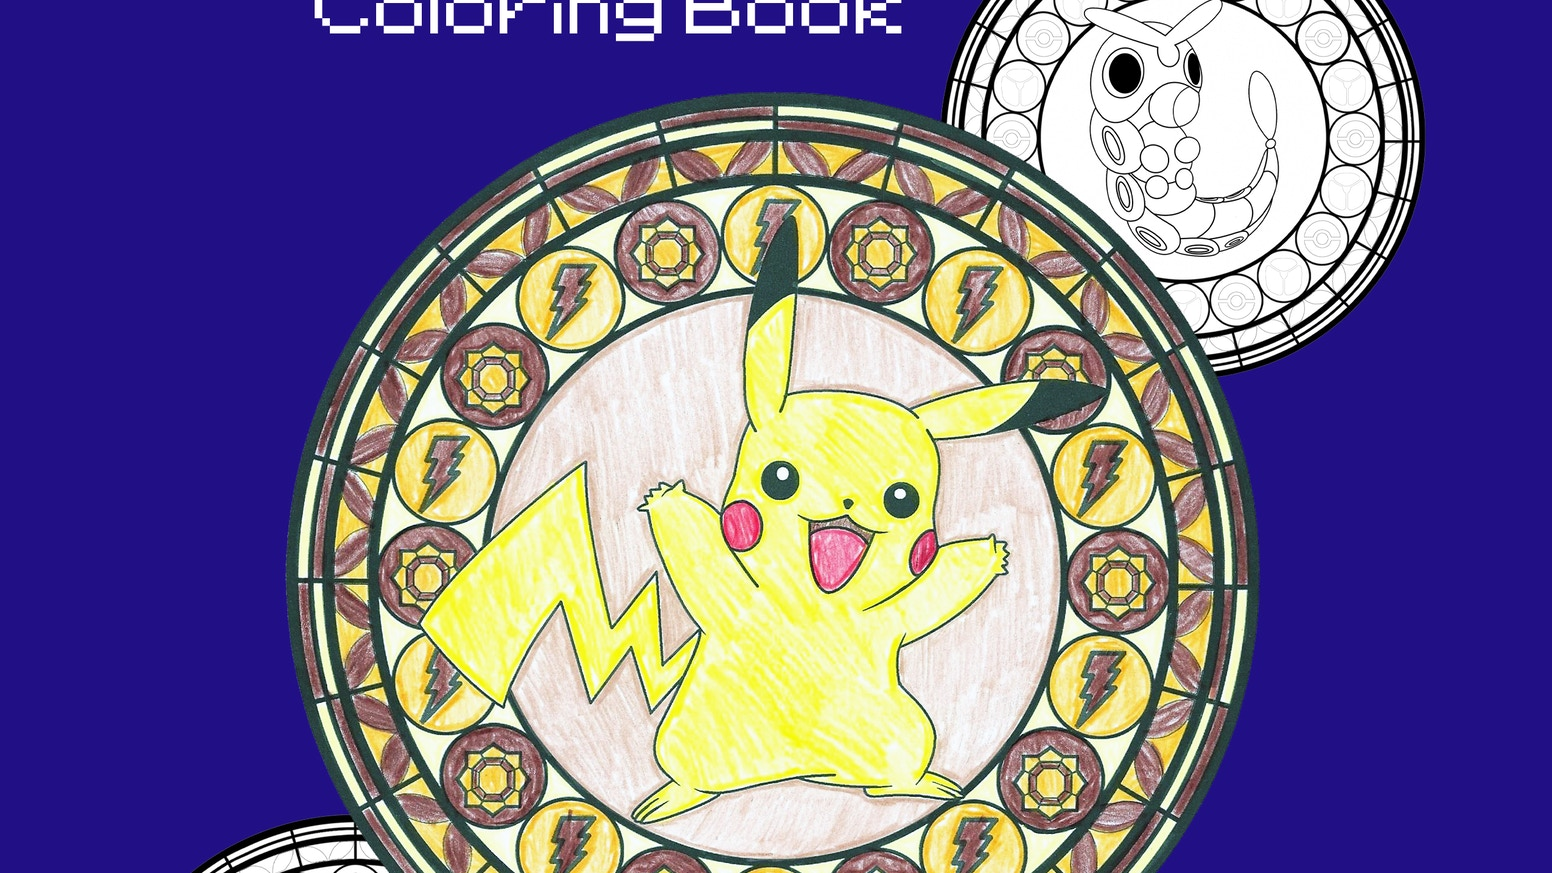 GEN 1 Pokemon Stained Glass Coloring Book by Jessica ...